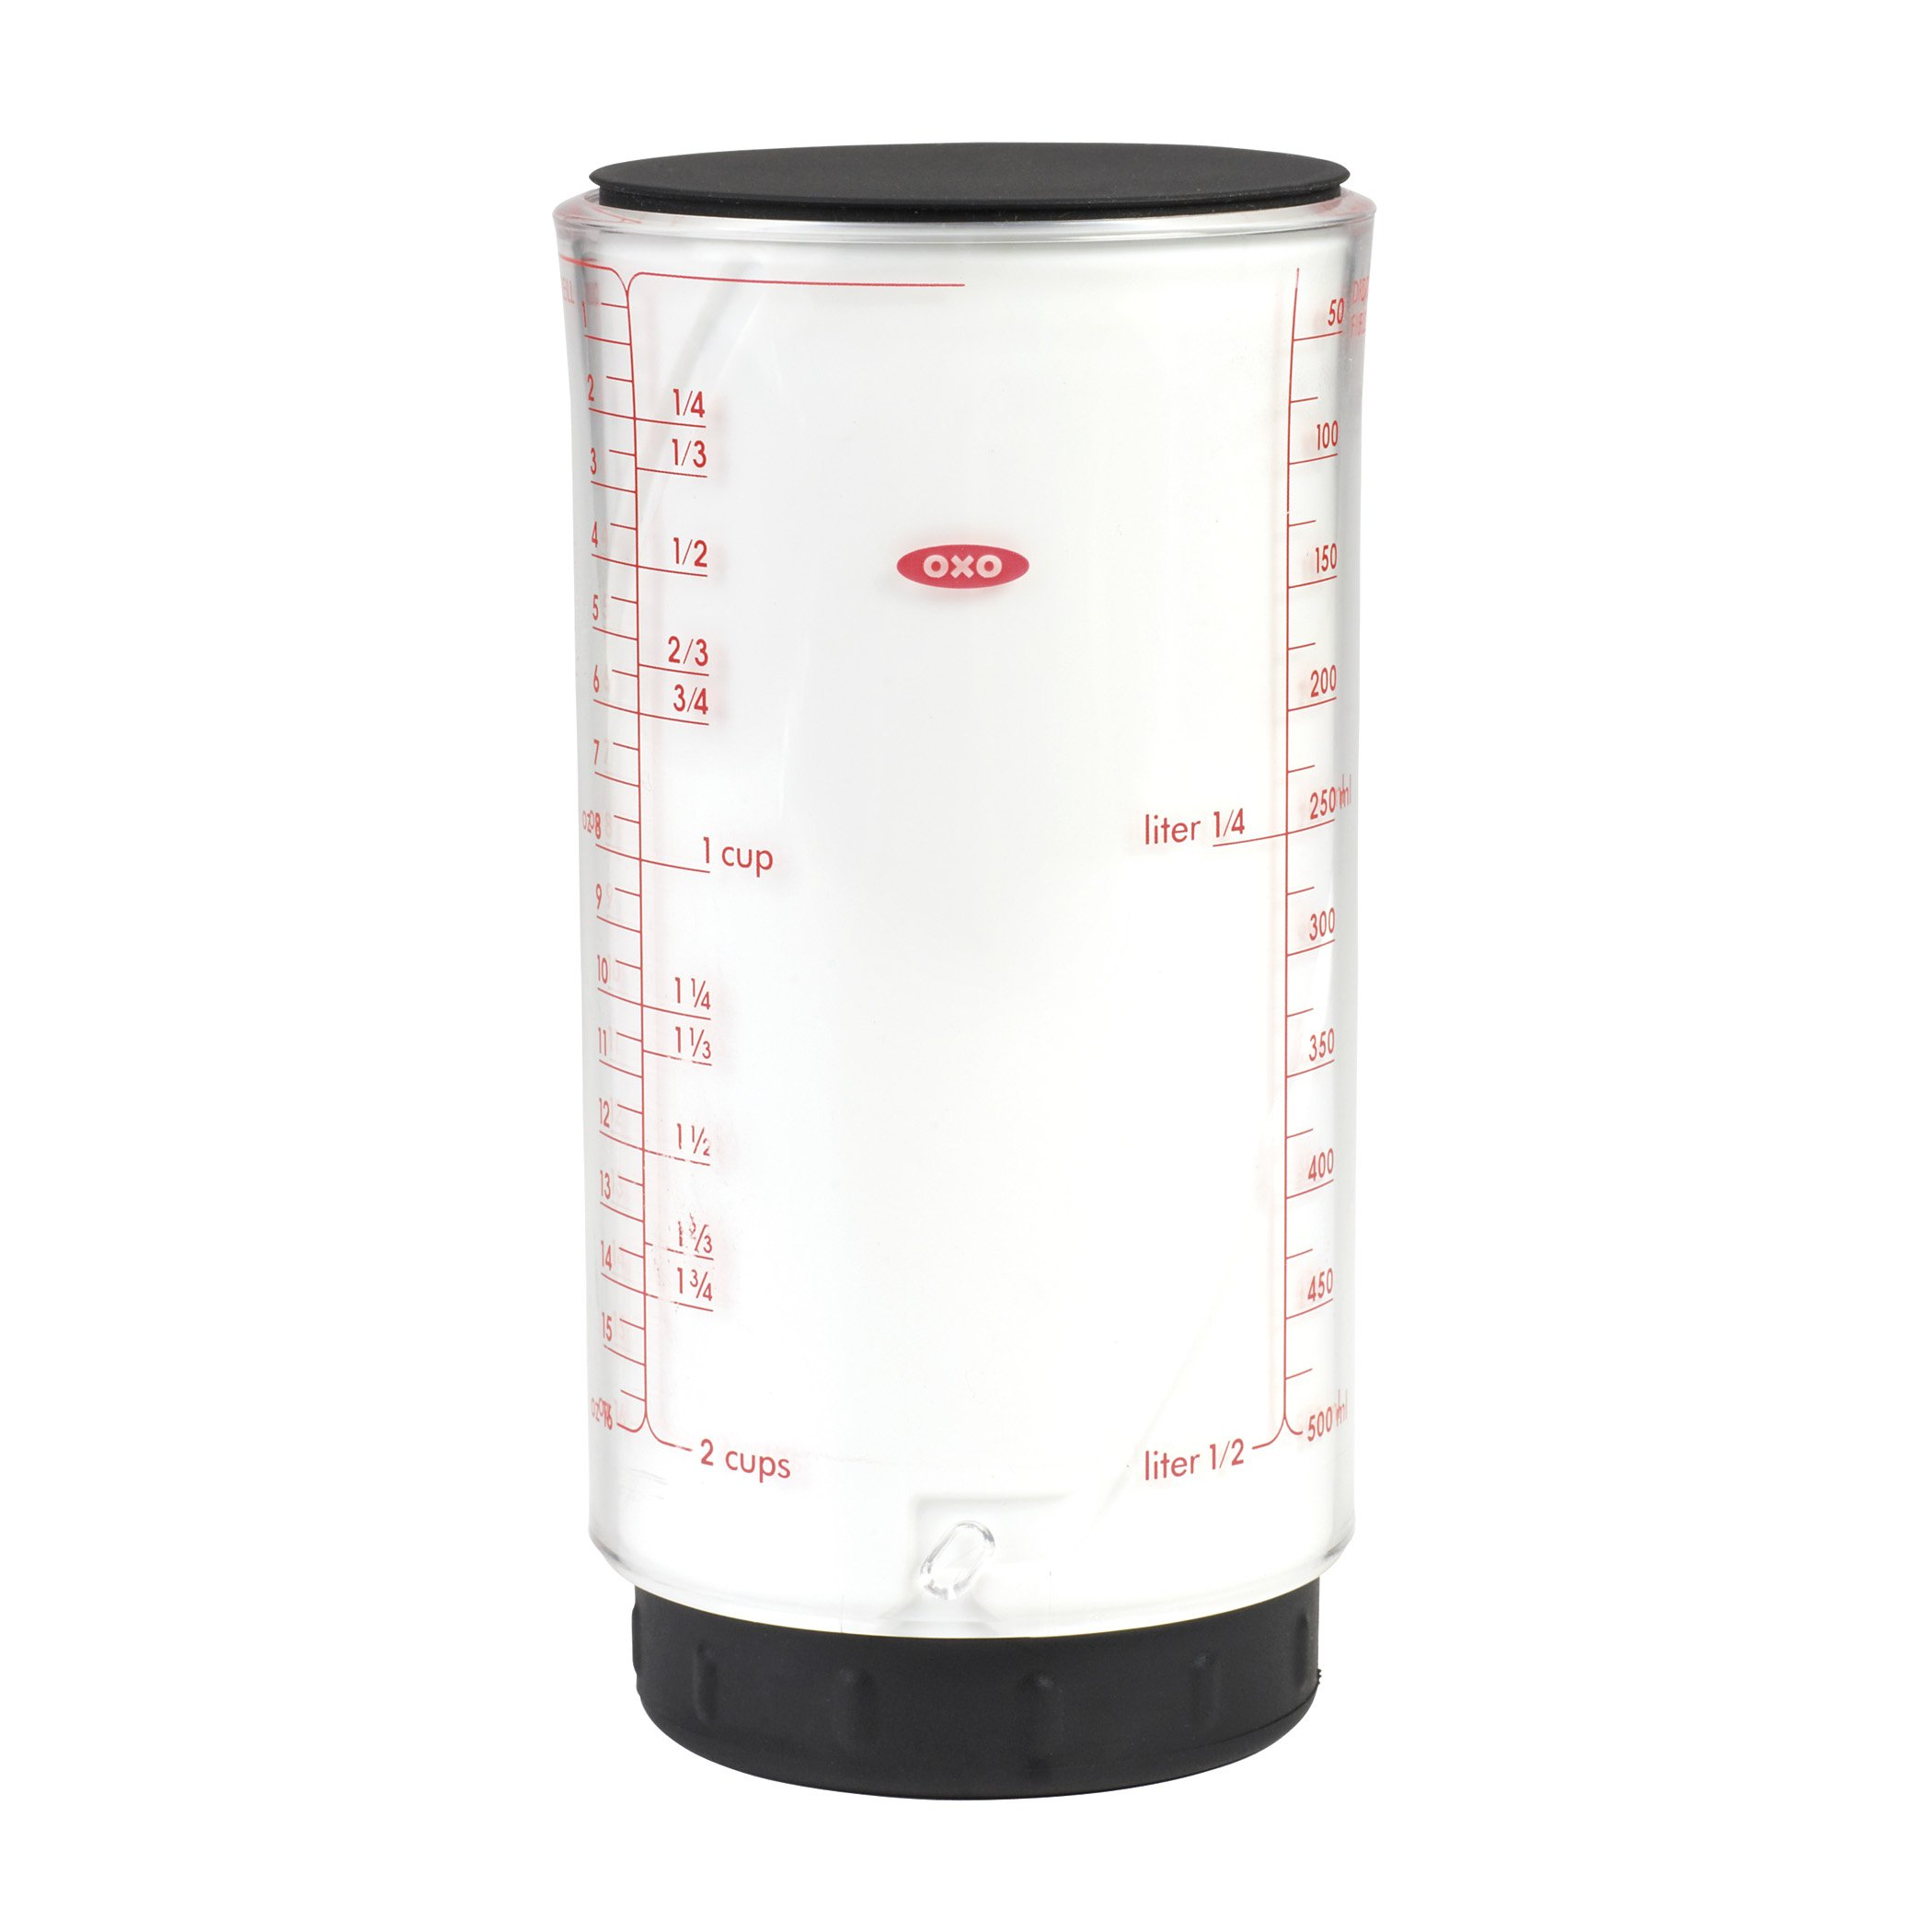 OXO Good Grips 2 Cup Adjustable Measuring Cup by OXO